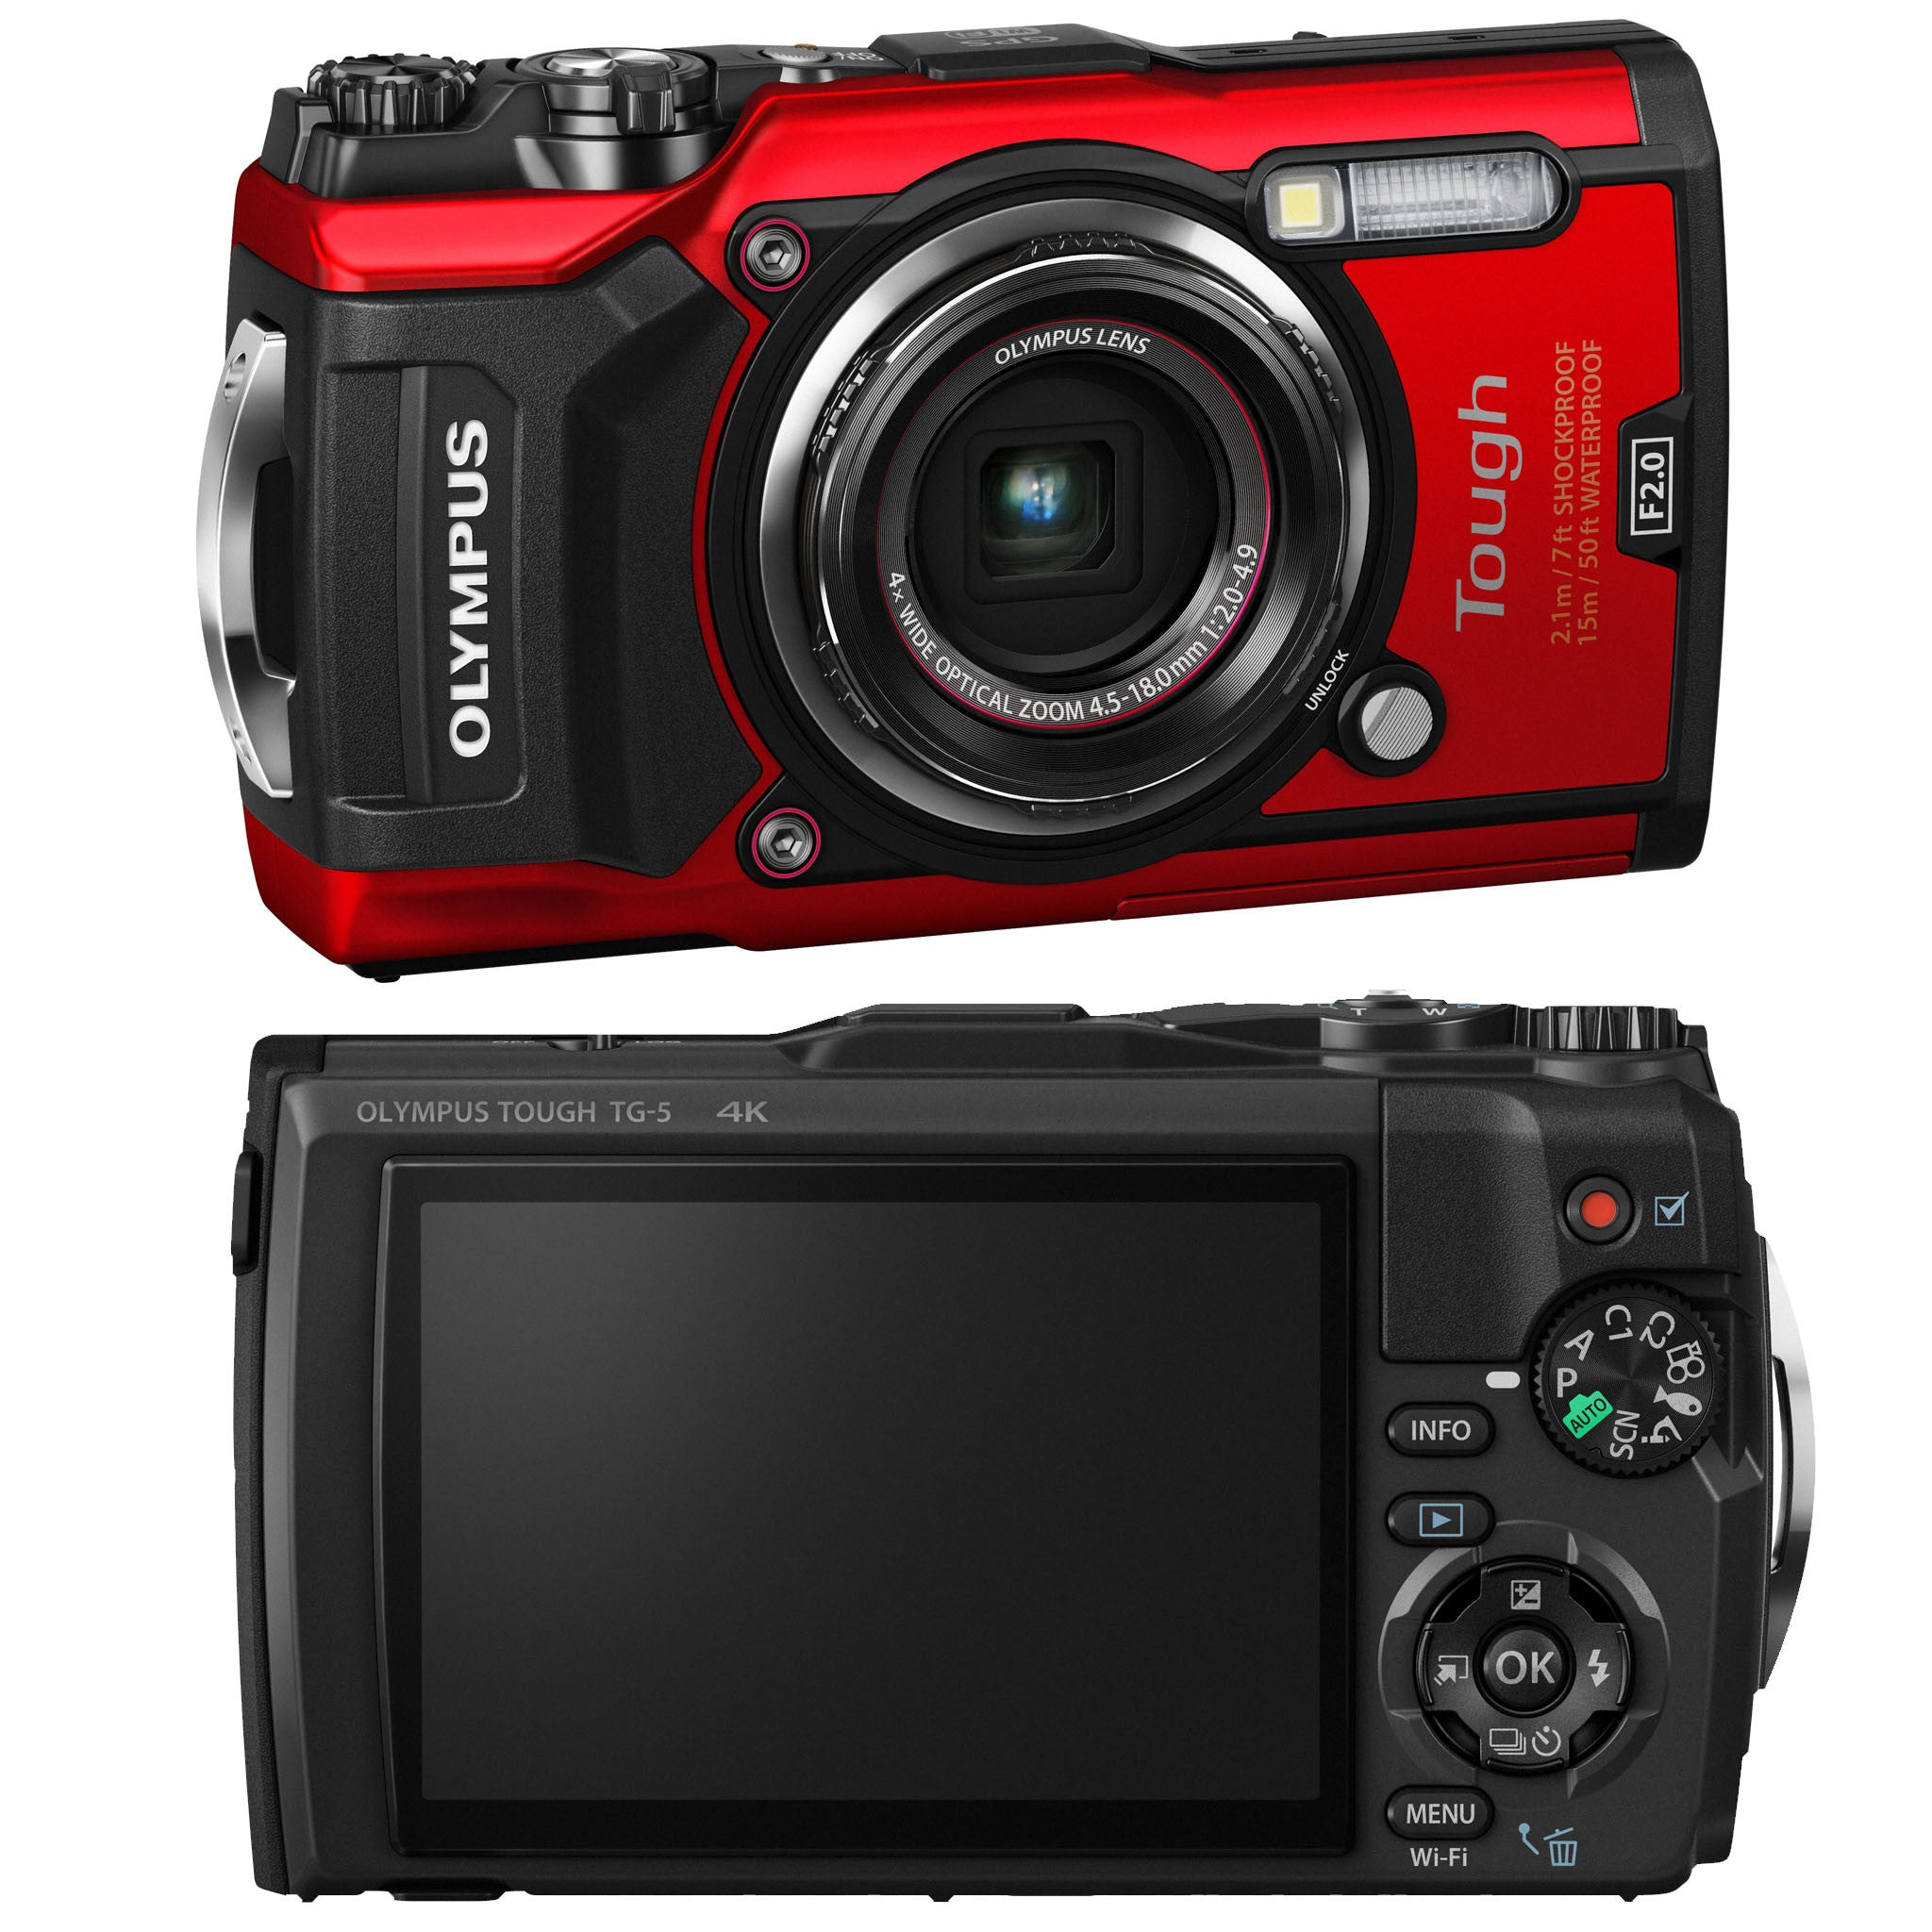 The Olympus Tough TG-5 — Conquer the Outdoors!